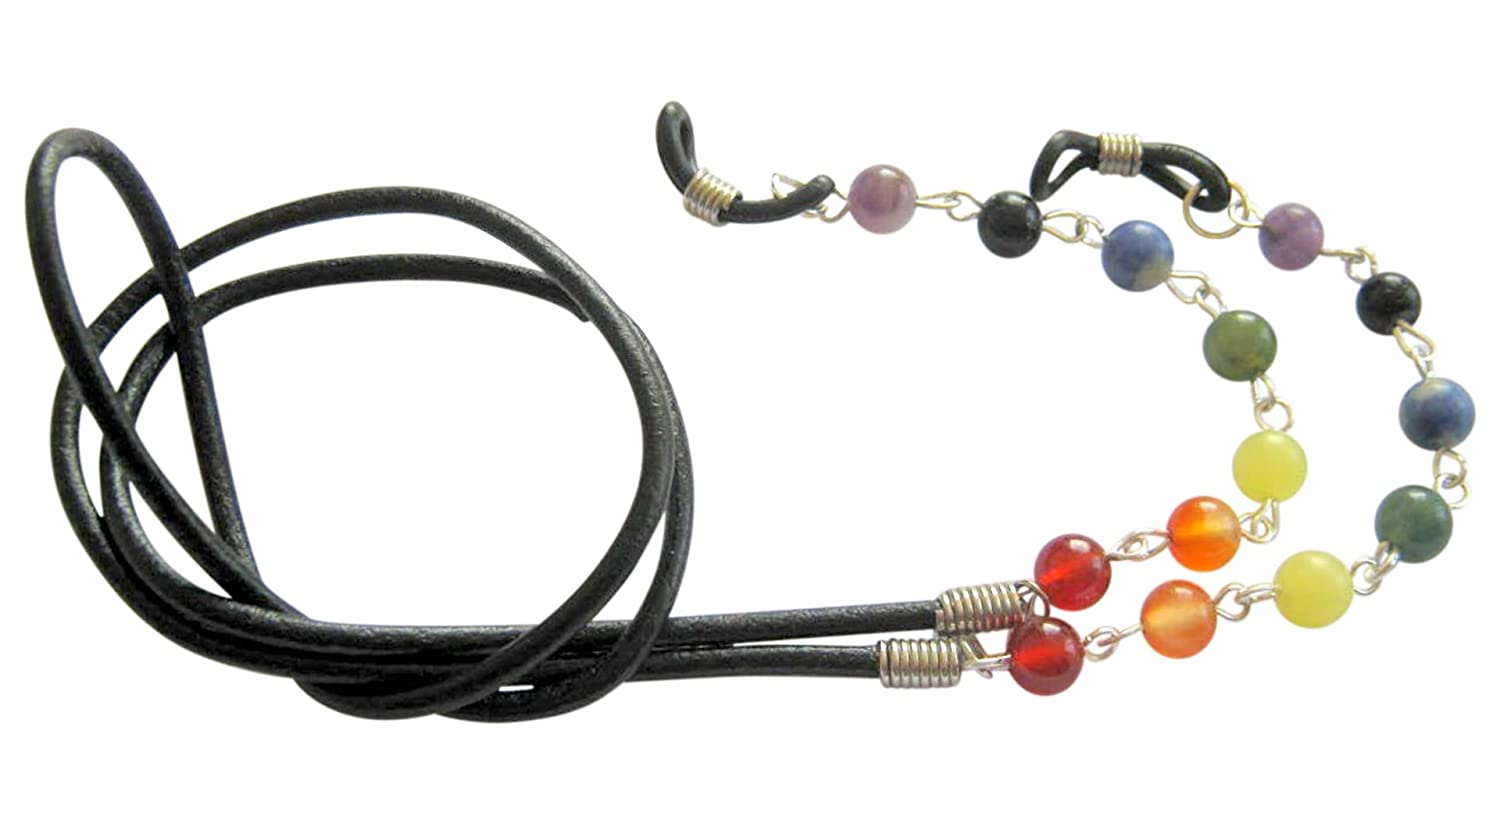 ~9 CHAKRA~ GEMSTONE AND LEATHER EYEGLASS GLASSES SPECTACLES CHAIN HOLDER CORD DELLENRO